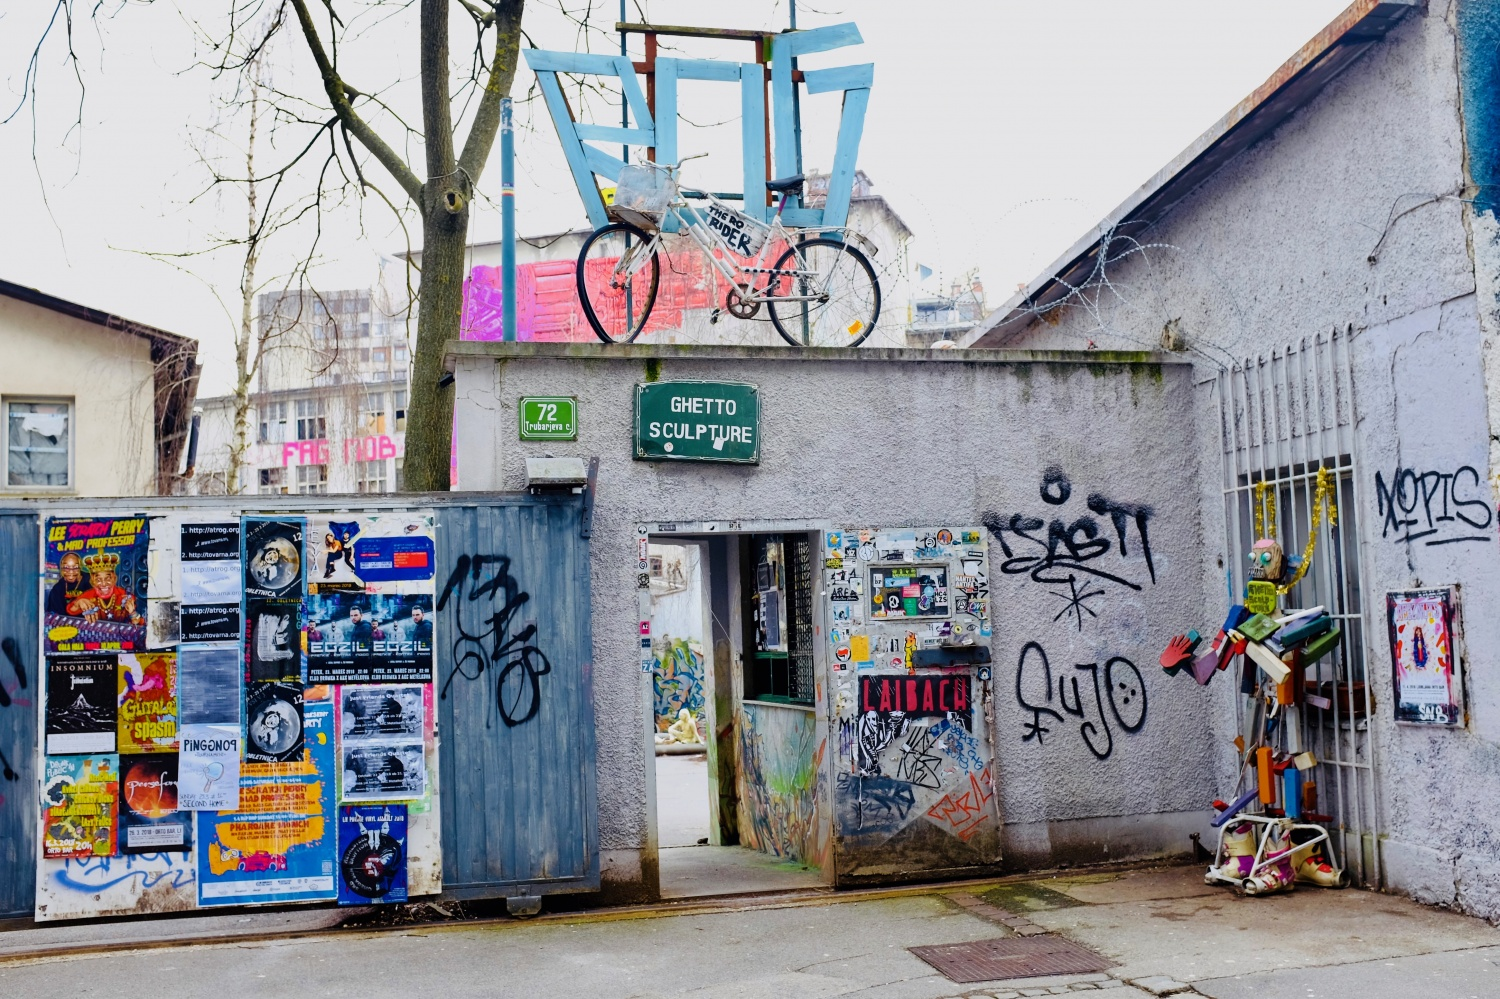 Exterior entrance to Rog squat, in an abandoned former bicycle factory, with Rog written in the bike over the door, covered in graffiti by students and local youth, in Ljubljana, Slovenia.